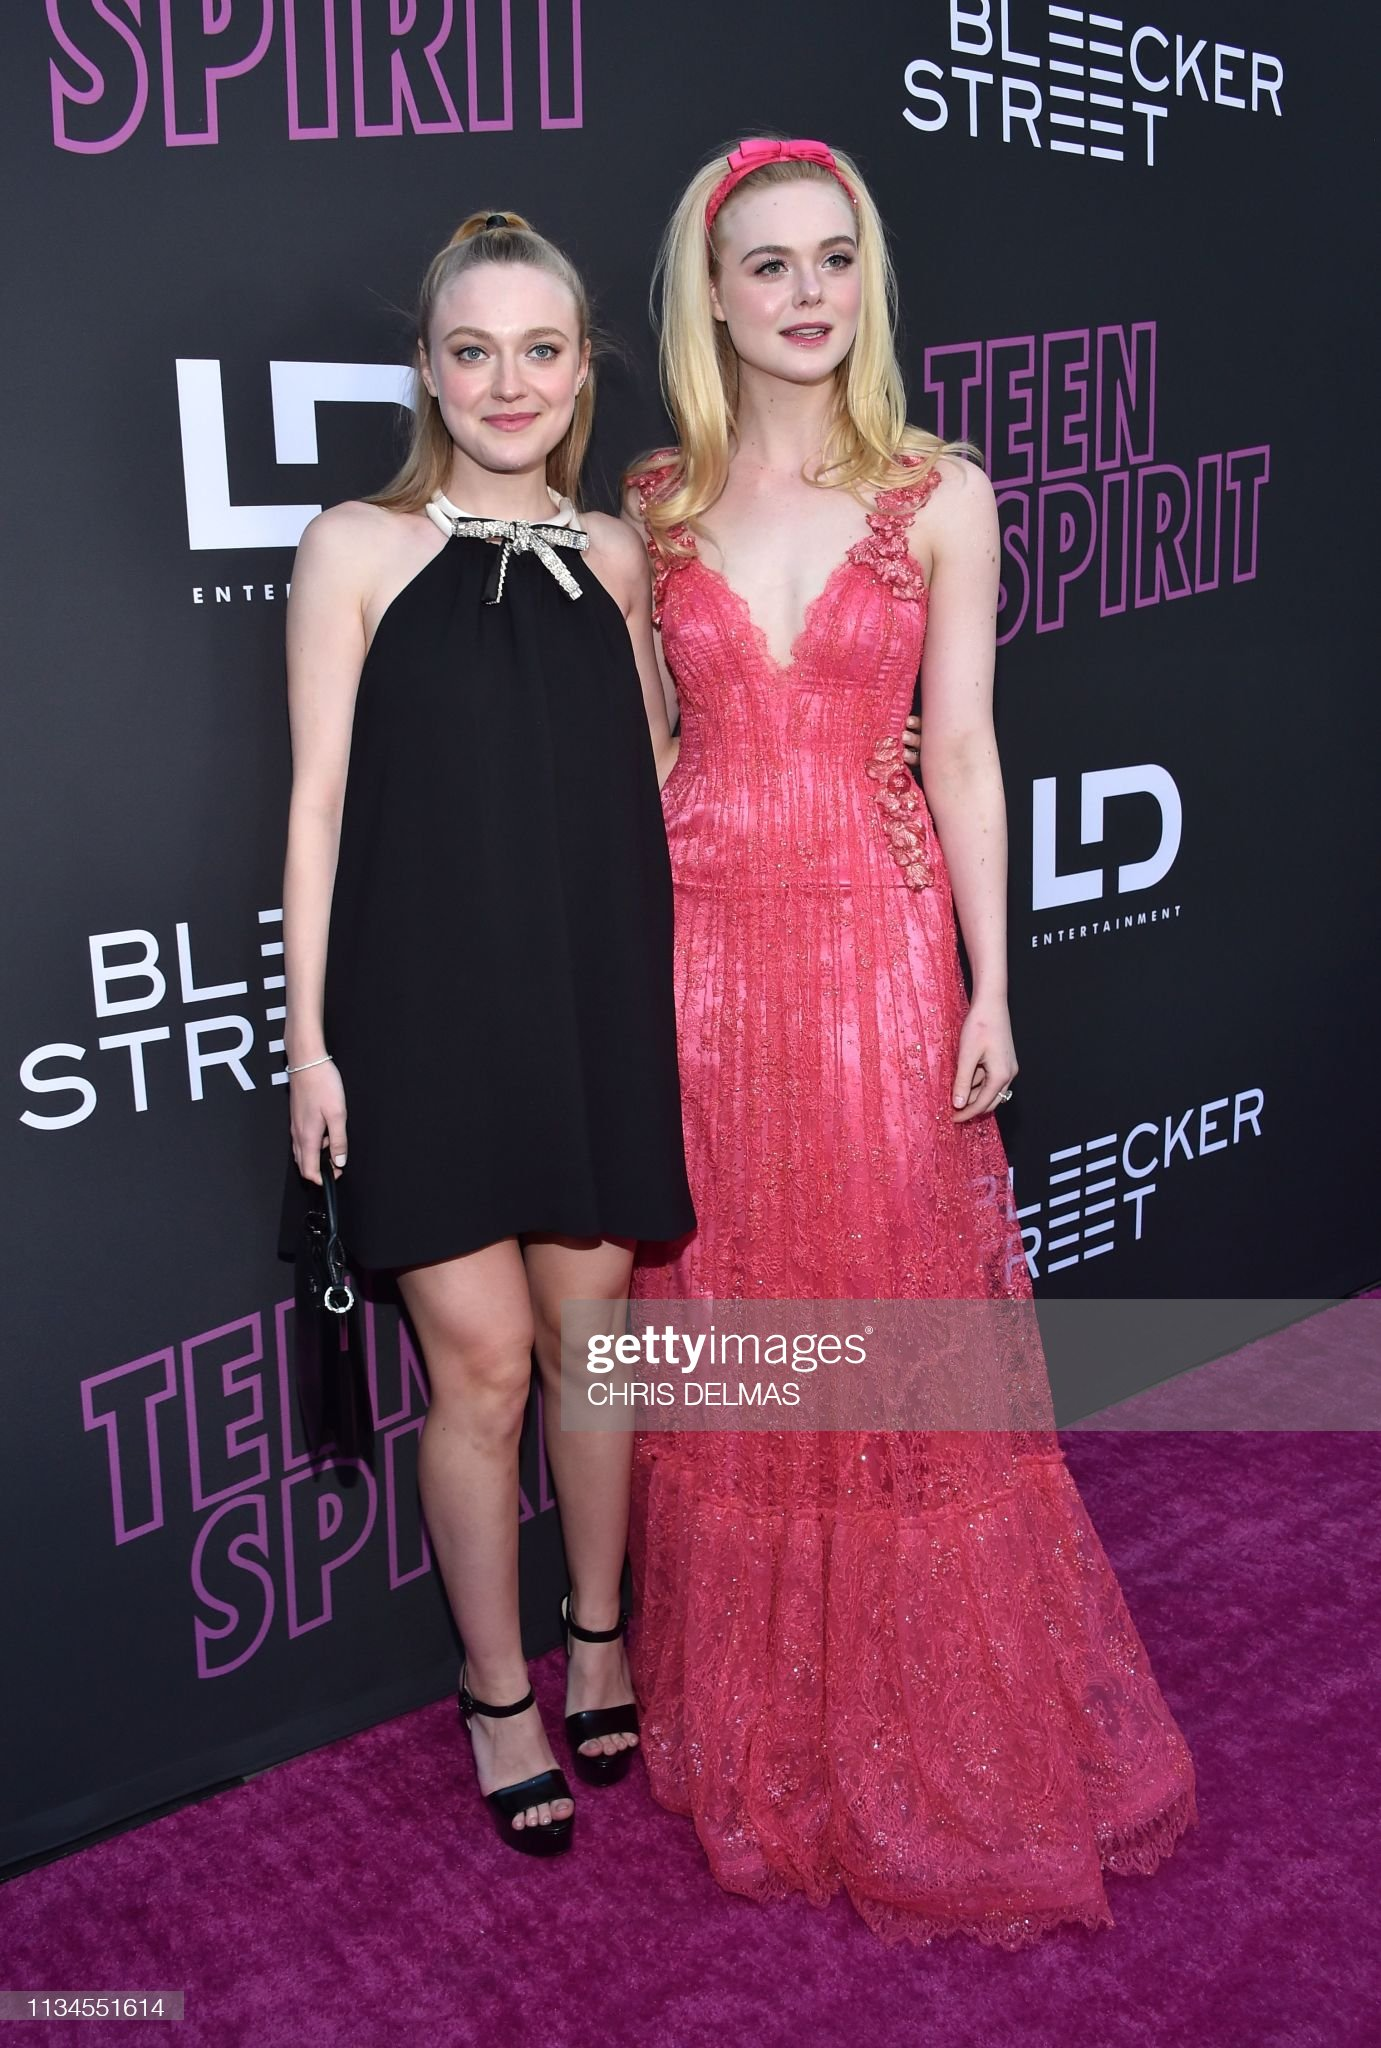 ¿Cuánto mide Dakota Fanning? - Real height Actress-elle-fanning-and-her-sister-actress-dakota-fanning-arrive-for-picture-id1134551614?s=2048x2048